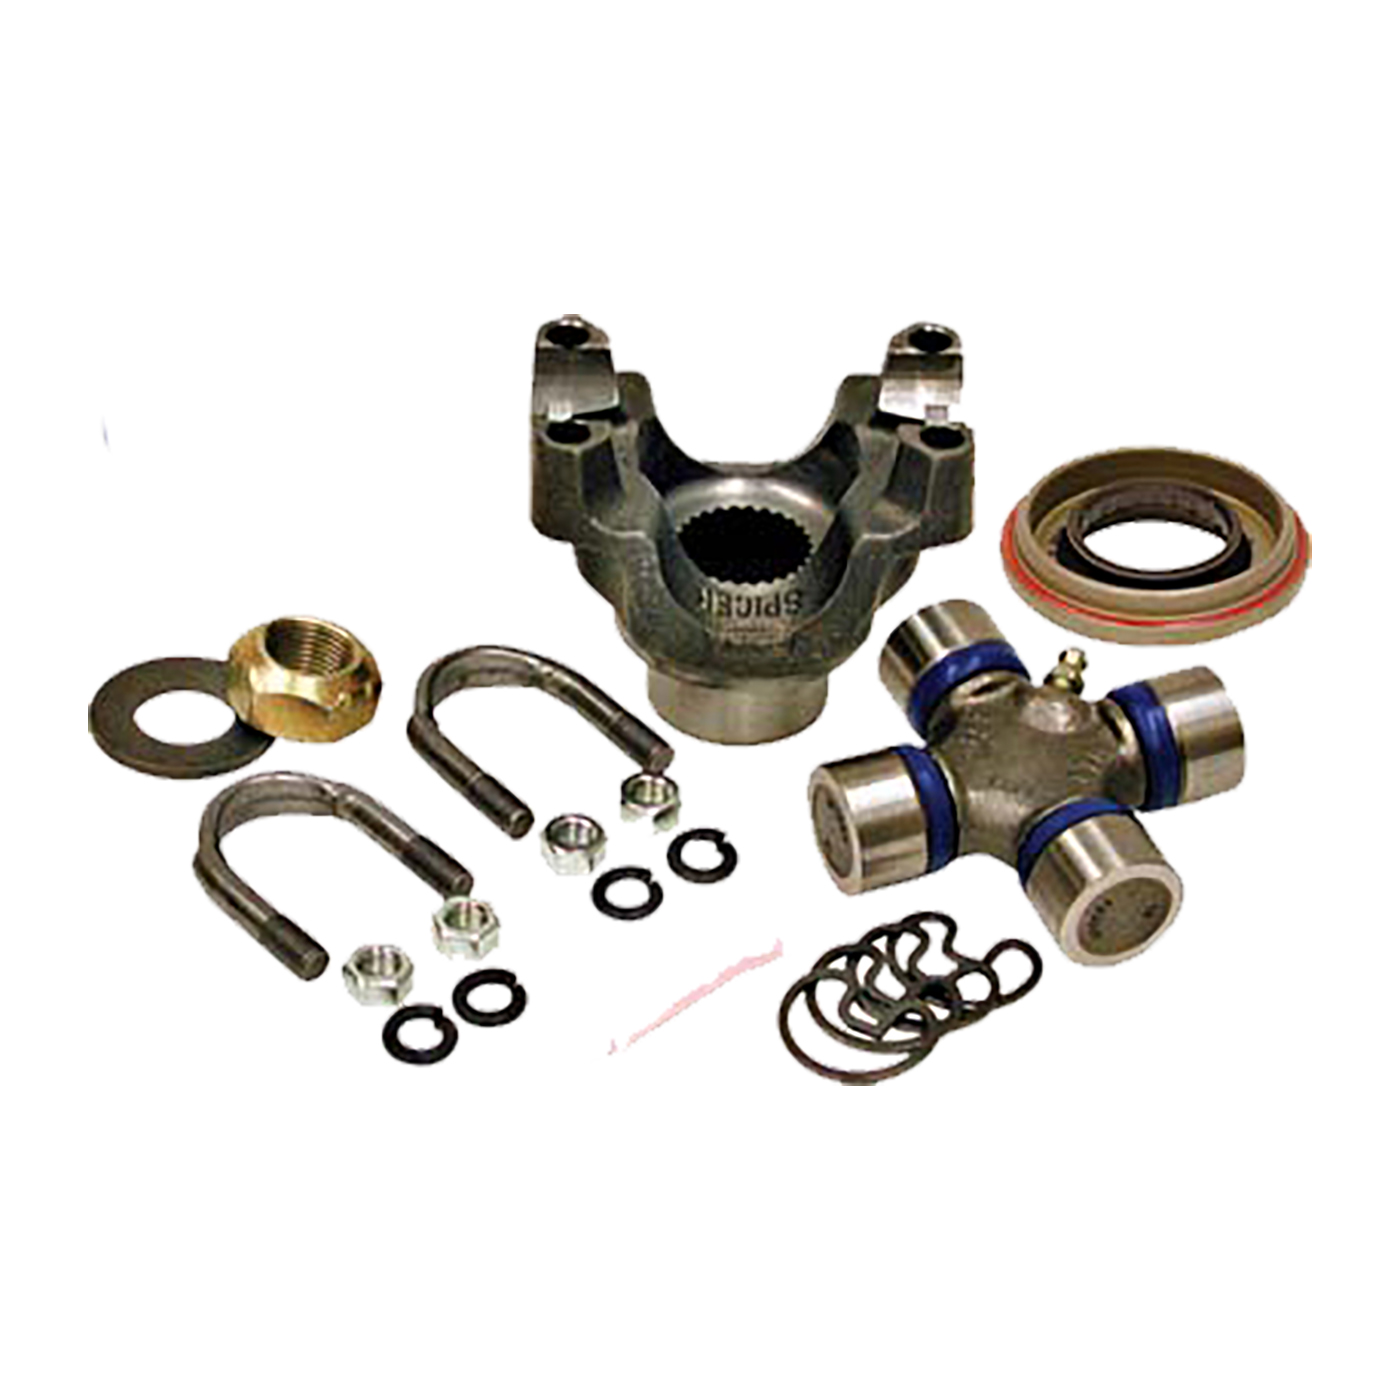 YP TRKD44-1310S - Yukon replacement trail repair kit for Dana 30 and 44 with 1310 size U/Joint and straps